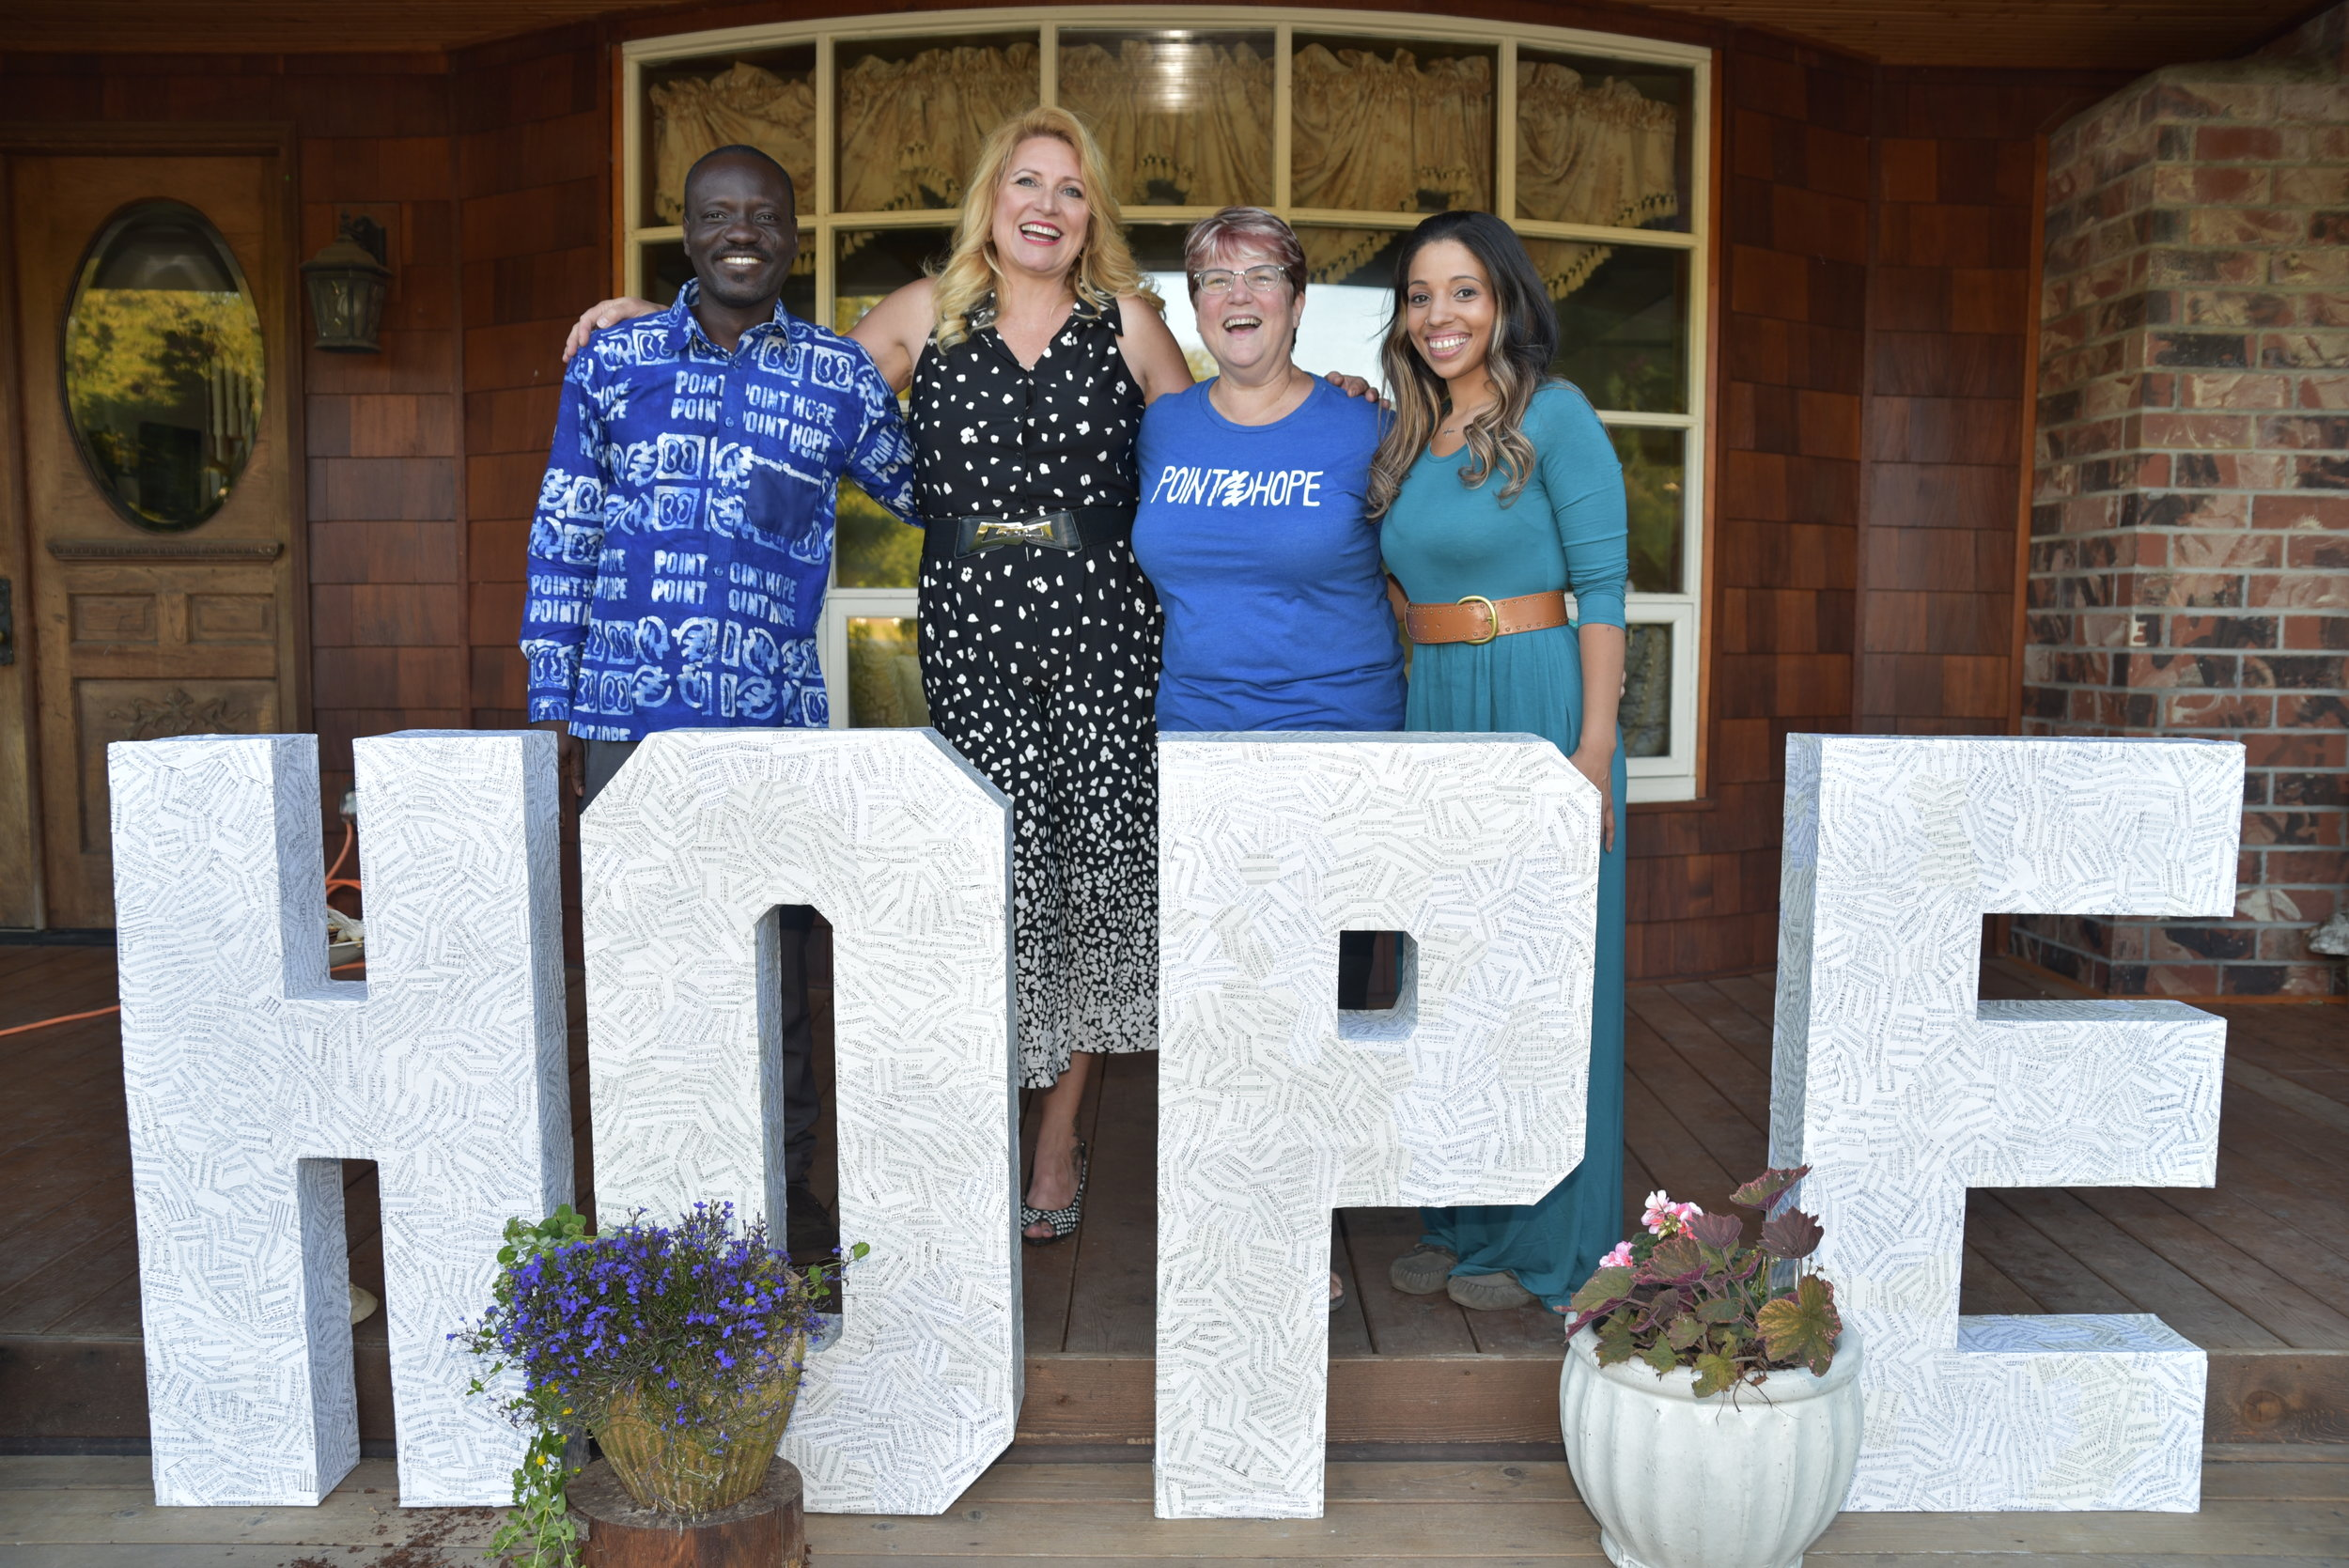 Adam (Point Hope Ghana Director), Delilah (Founder), Jan (Point Hope Executive Director), Erin (Office Manager & Domestic Programs Coordinator)